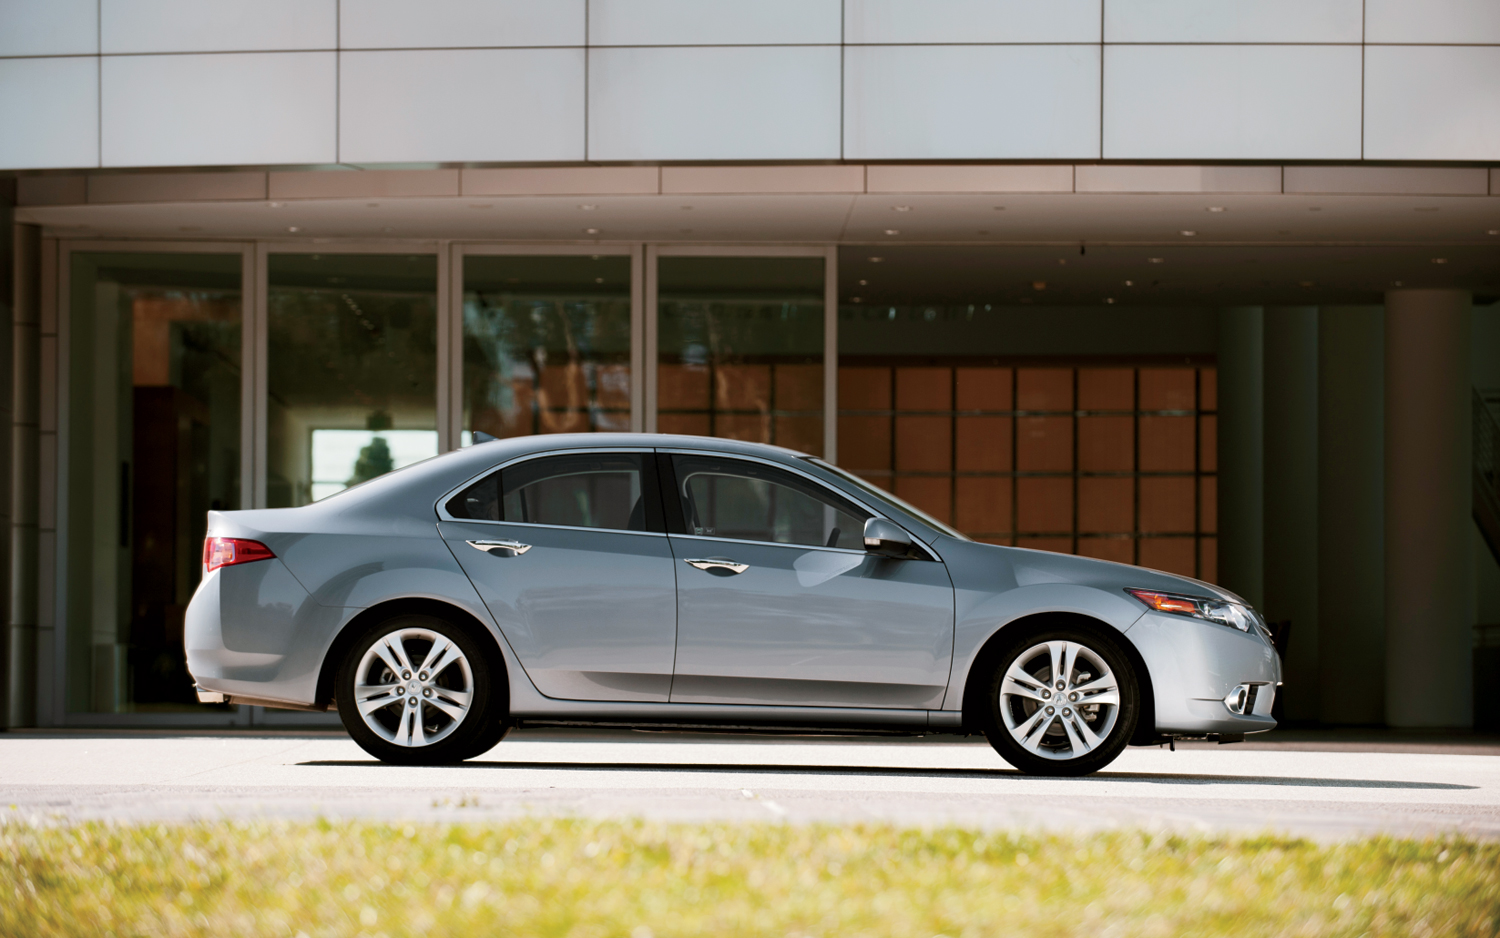 2014 Acura Tsx Photos, Informations, Articles - BestCarMag.com